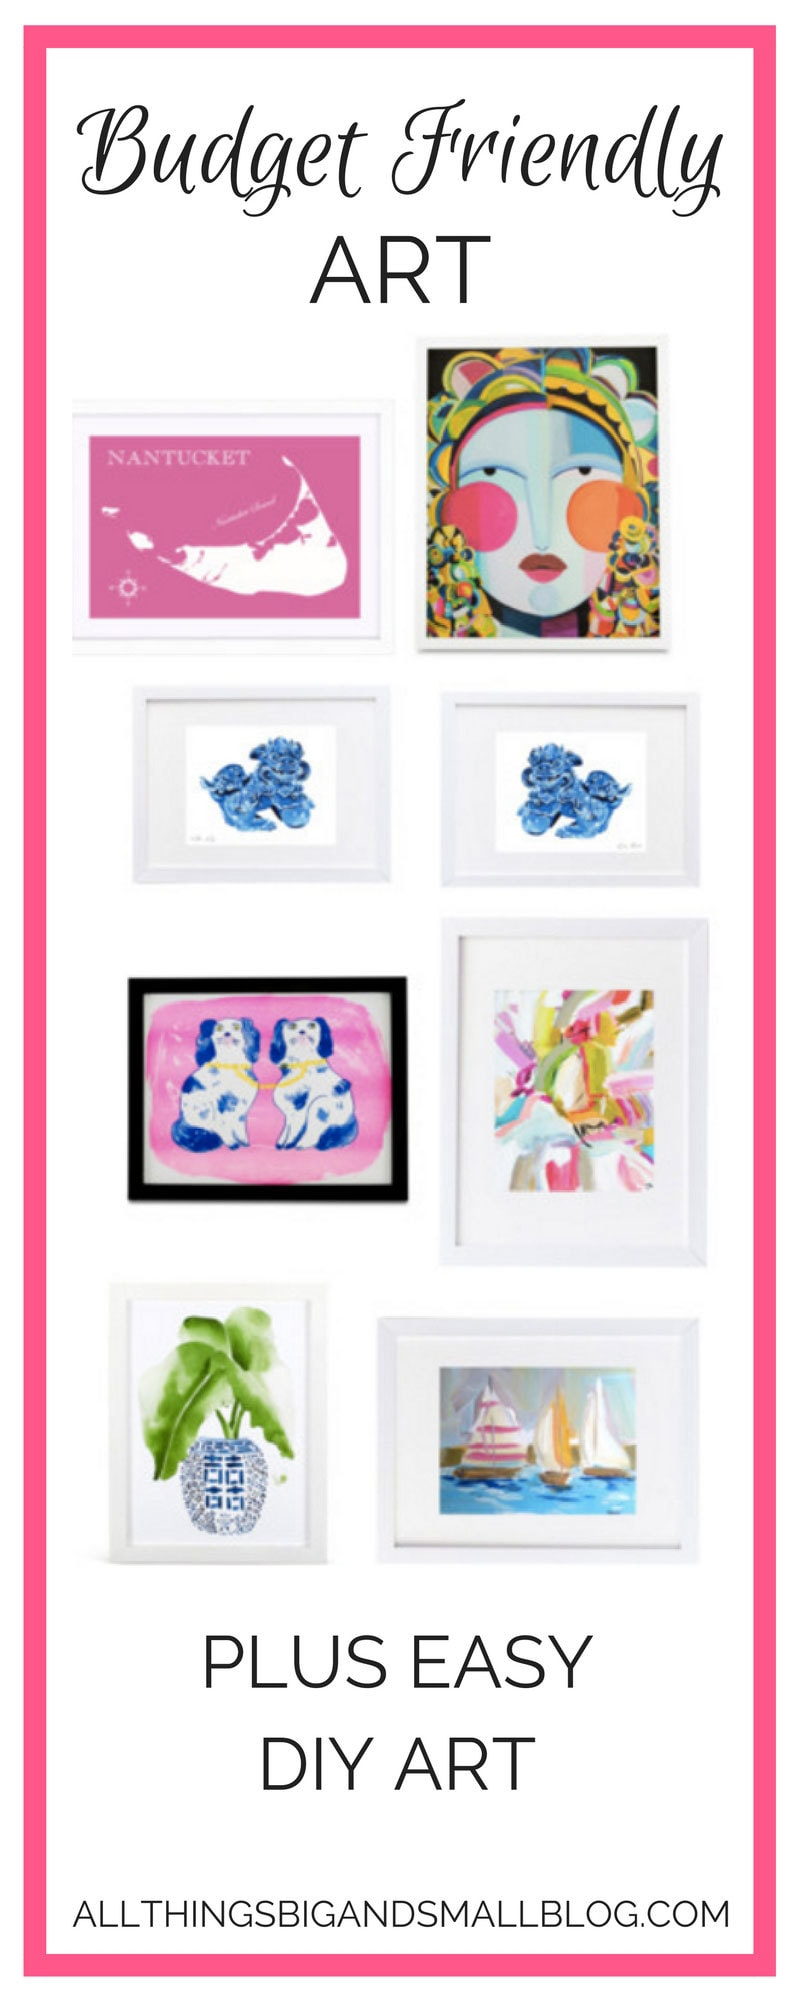 budget friendly art | affordable artwork for your home that looks amazing | All Things Big and Small